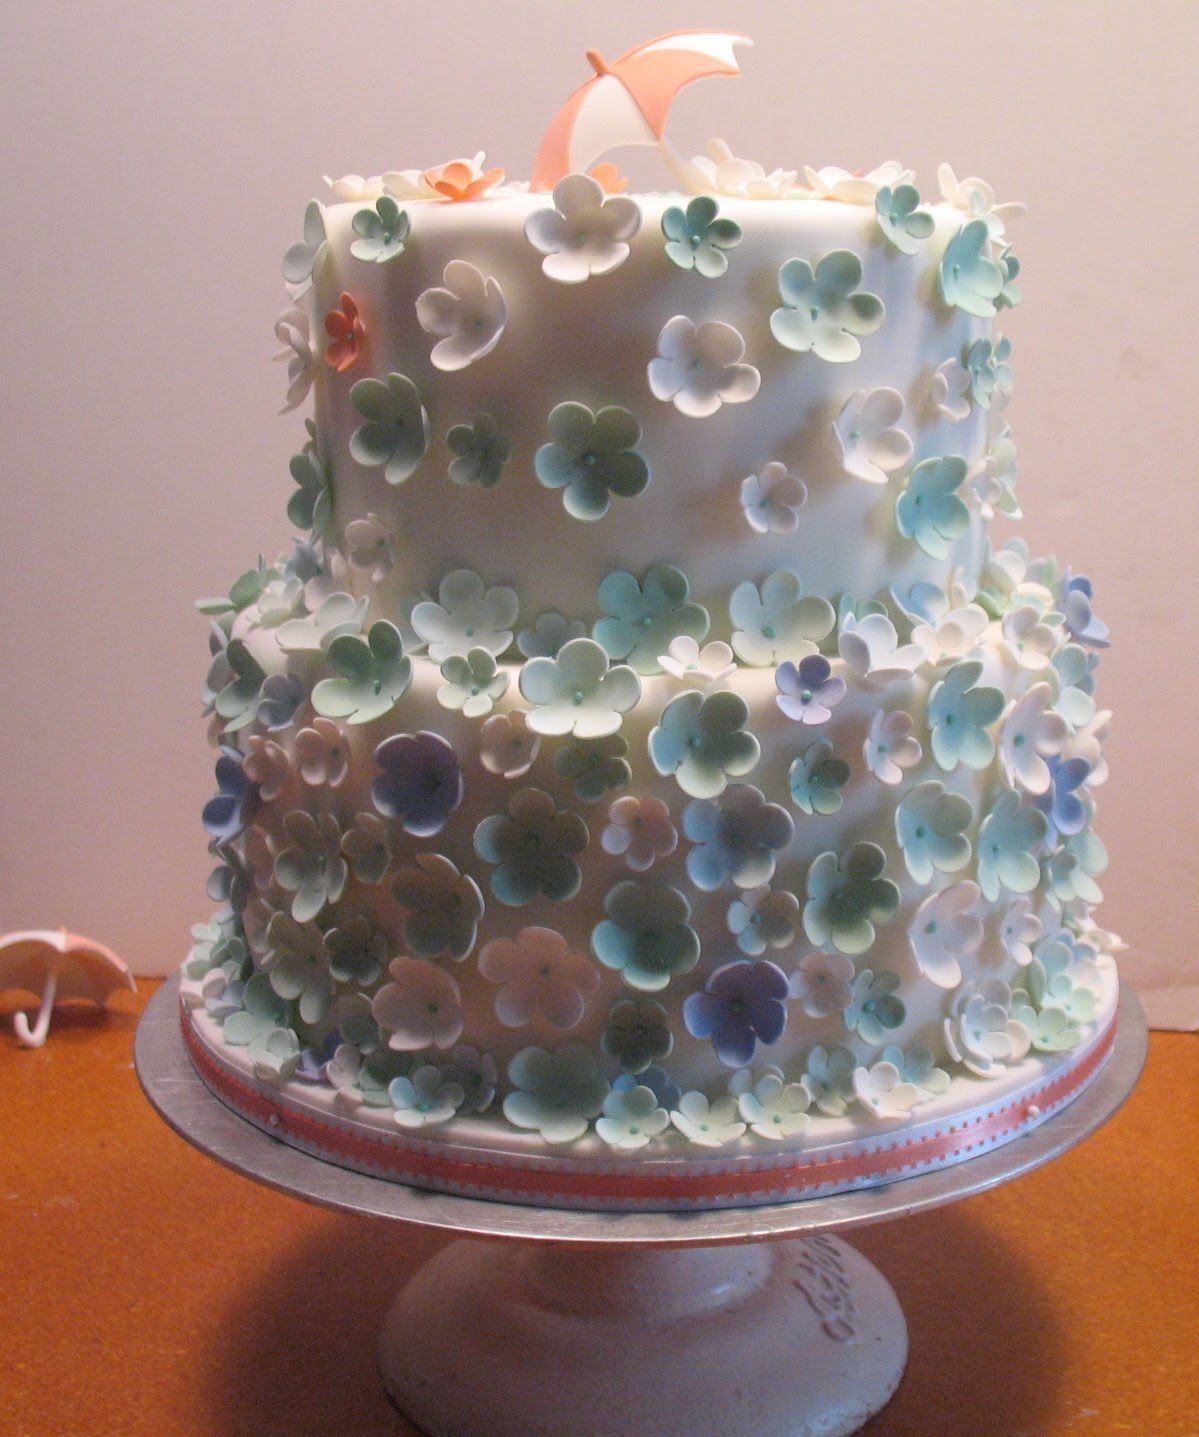 Cake Decorations For Bridal Shower : Baked Ideas: A simple bridal shower cake, colors to match ...